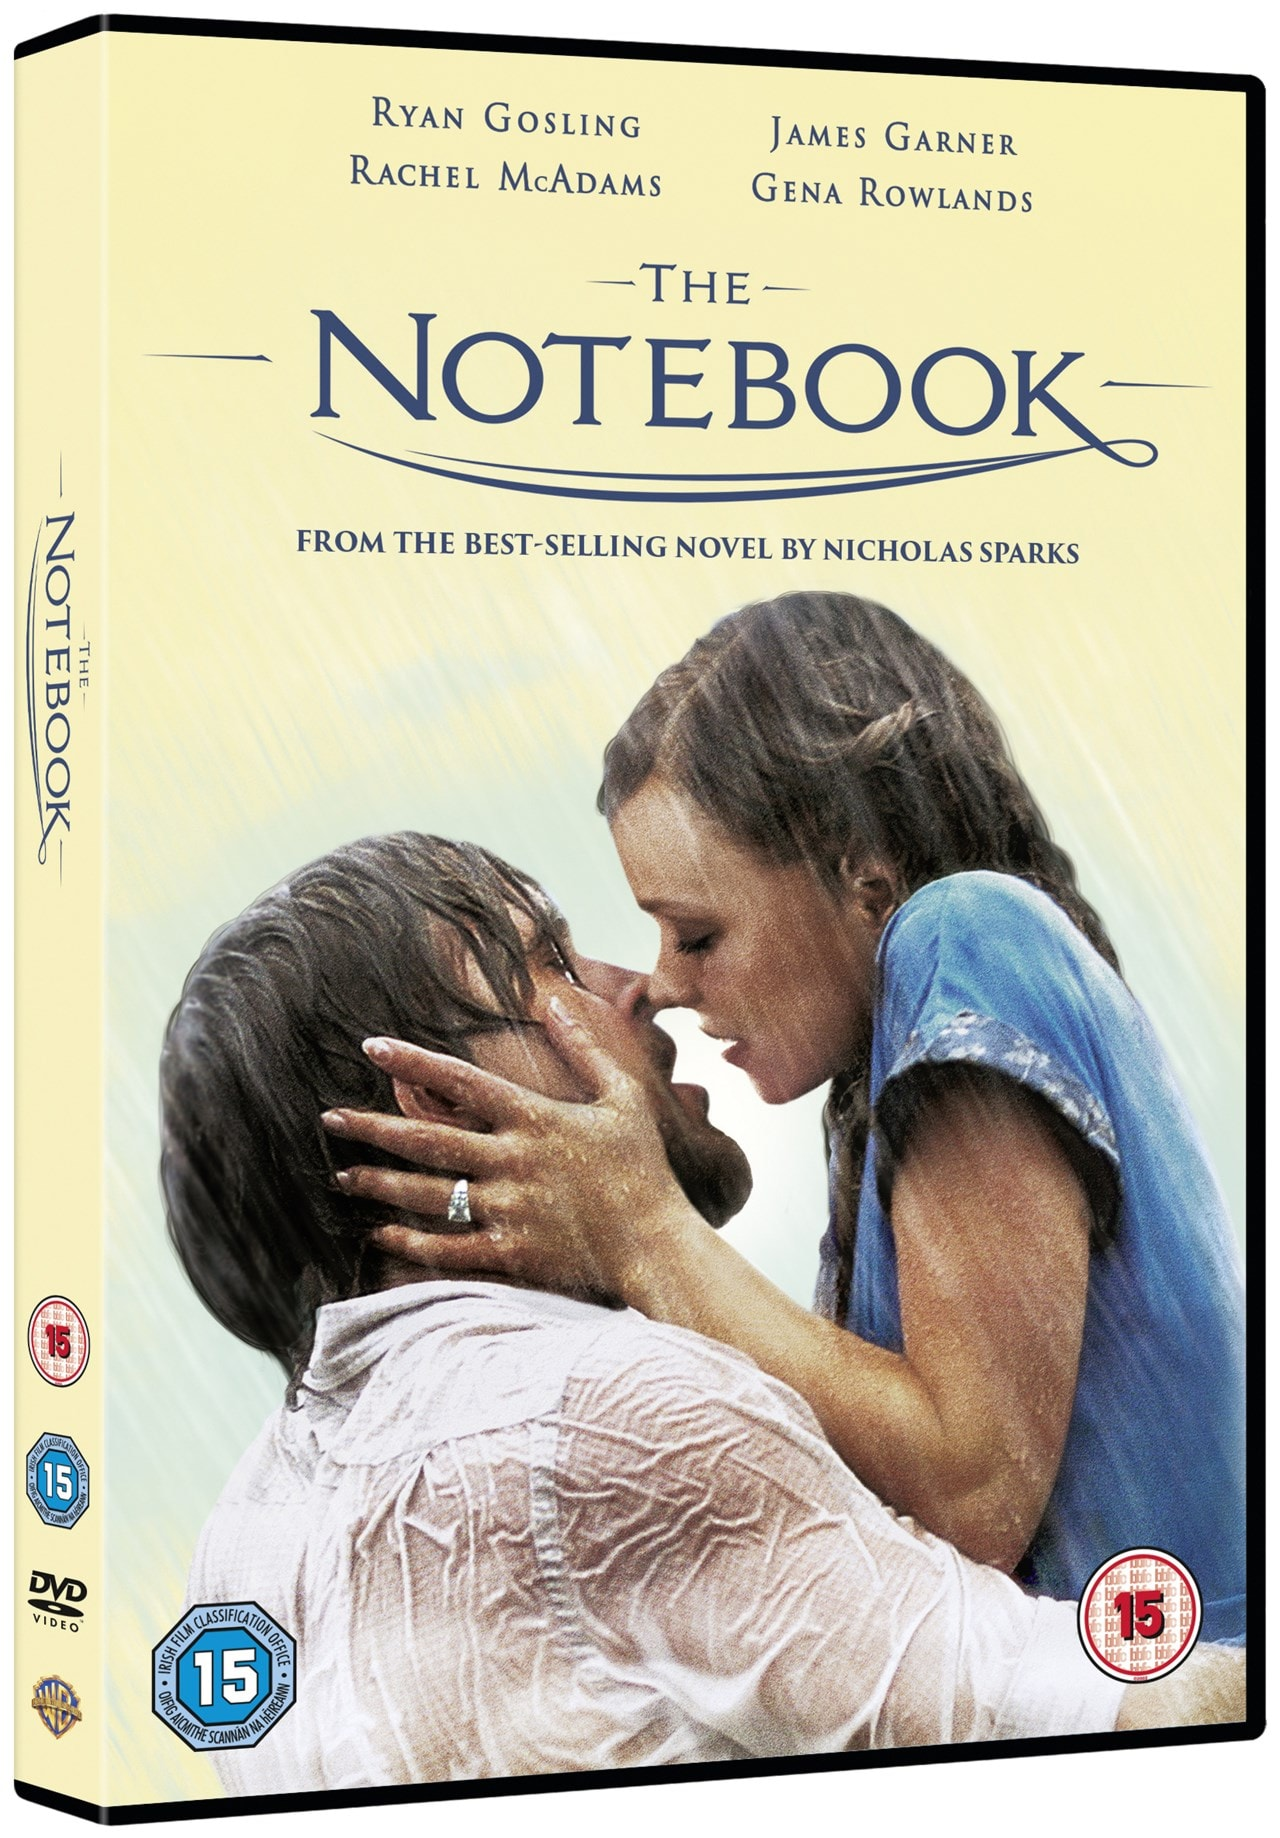 The Notebook - 2